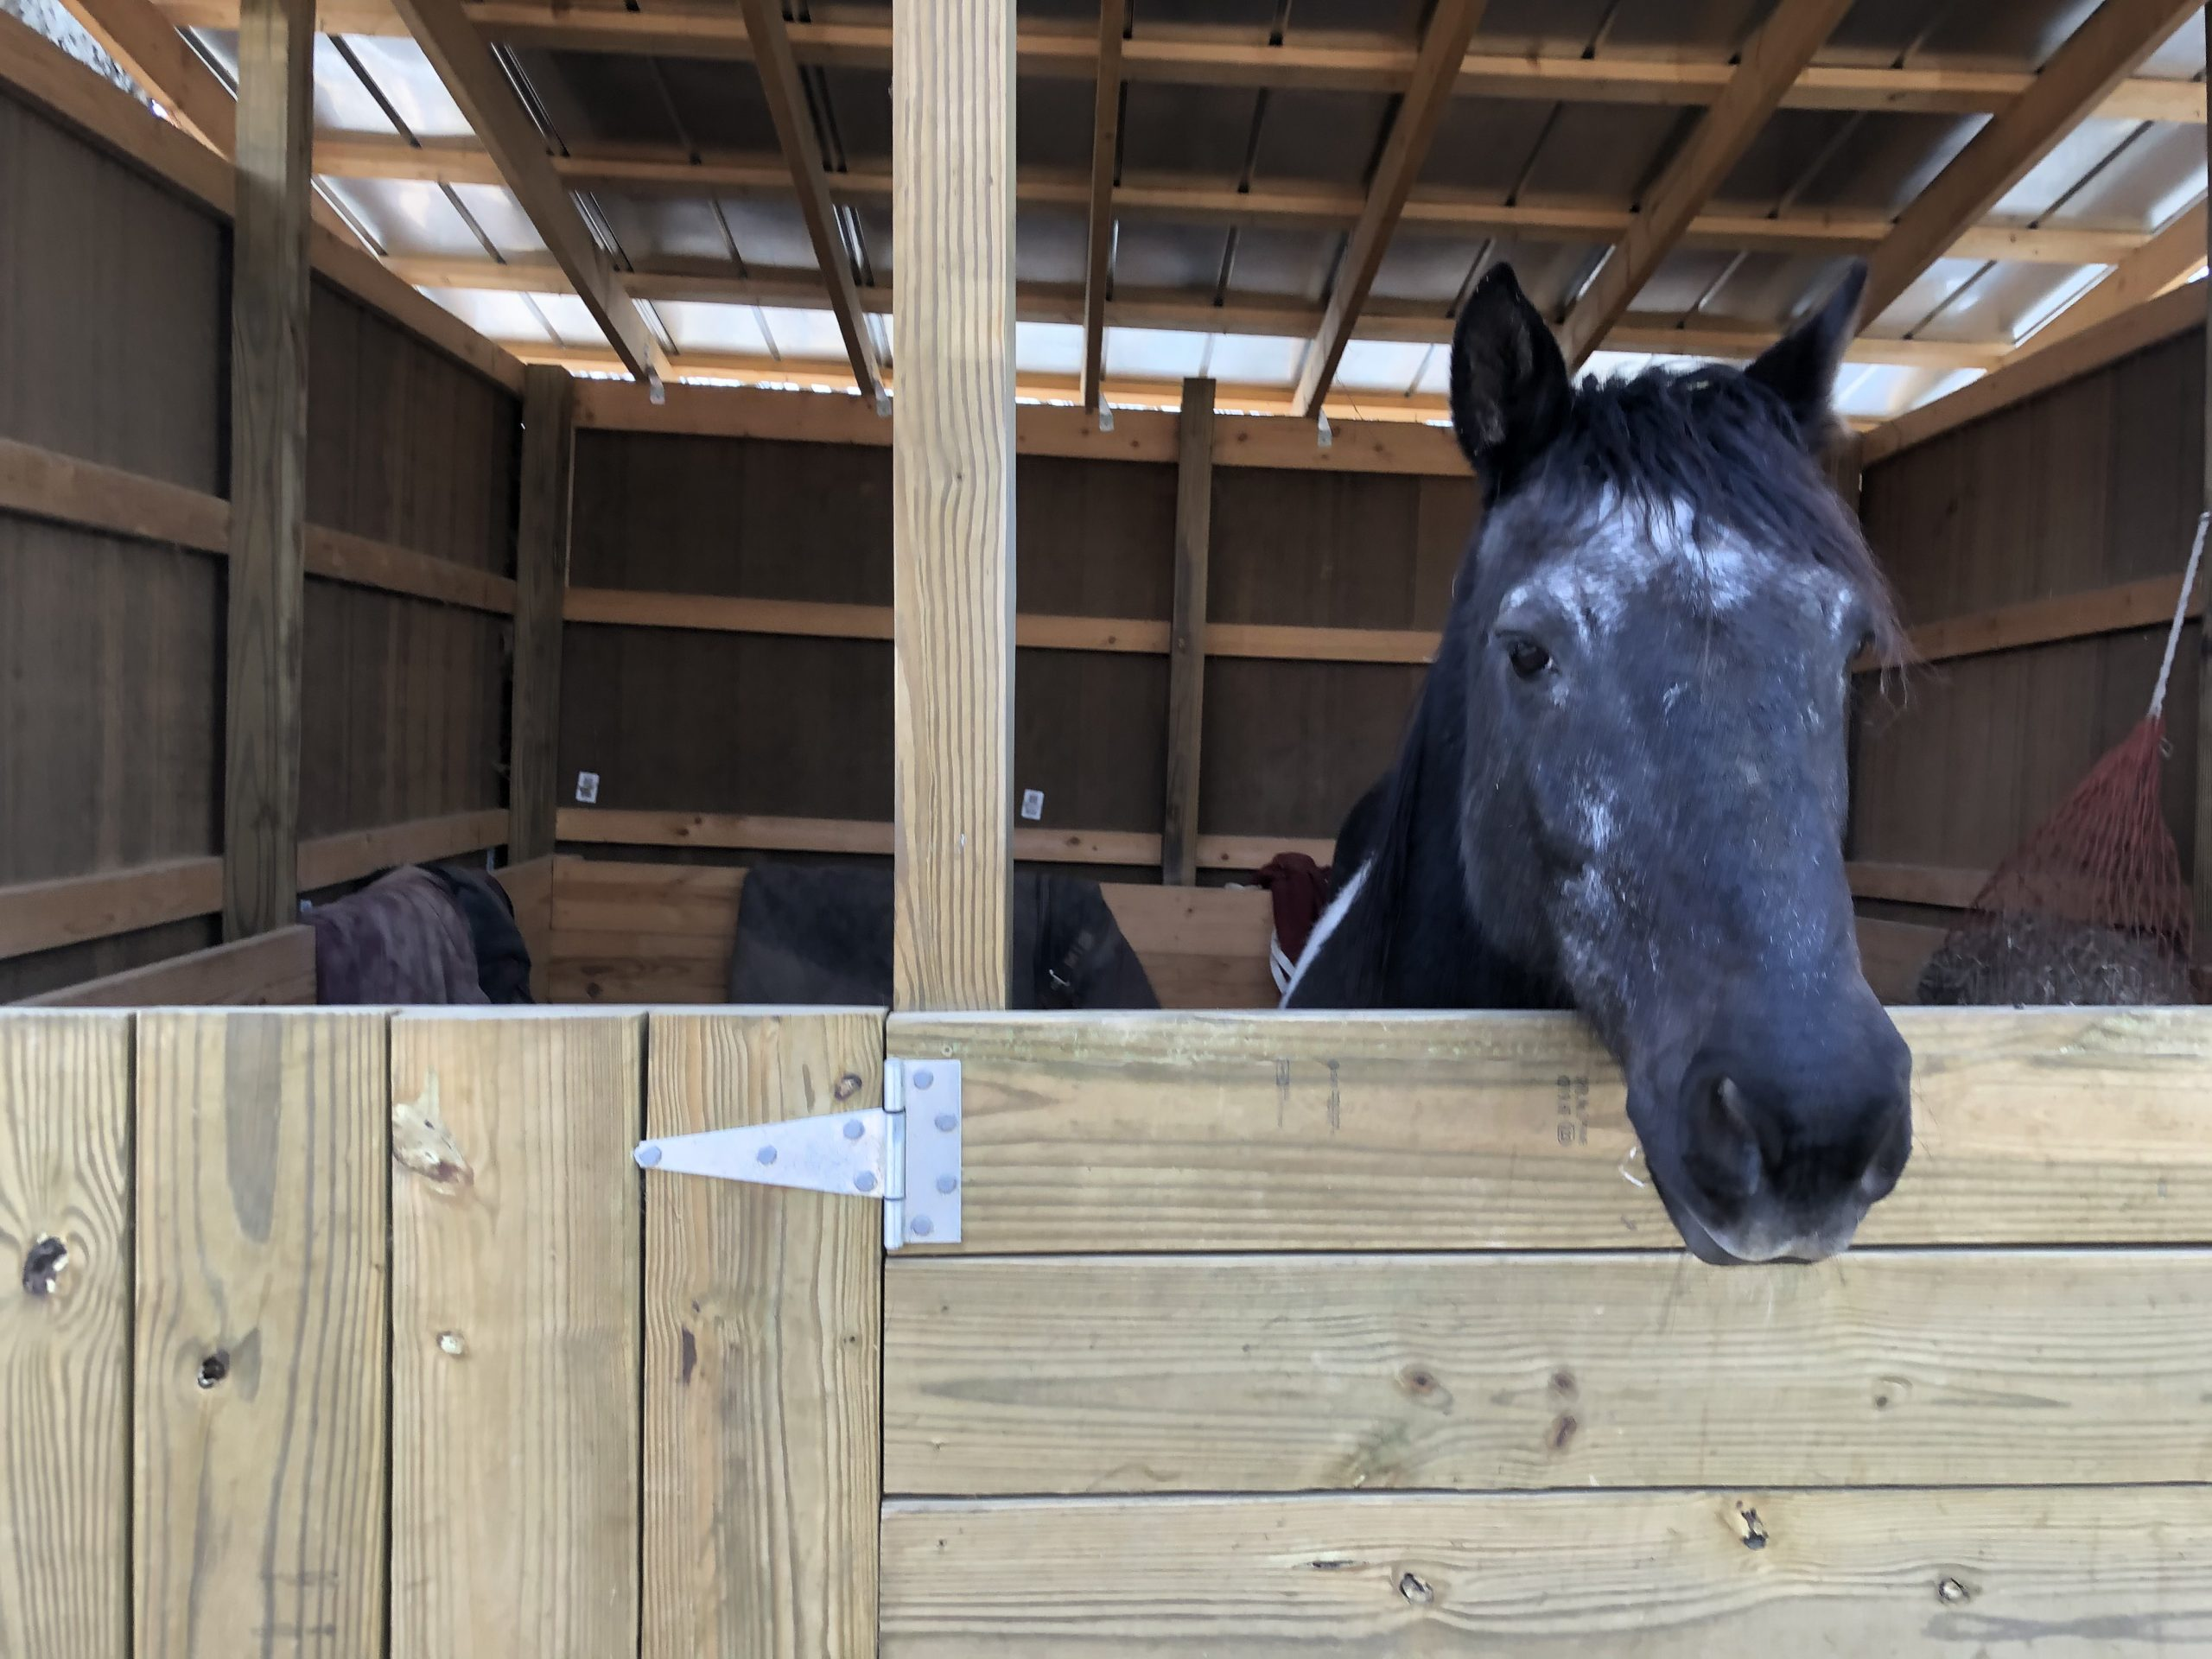 Hoofbeats goes 'home' to Fairfield farm